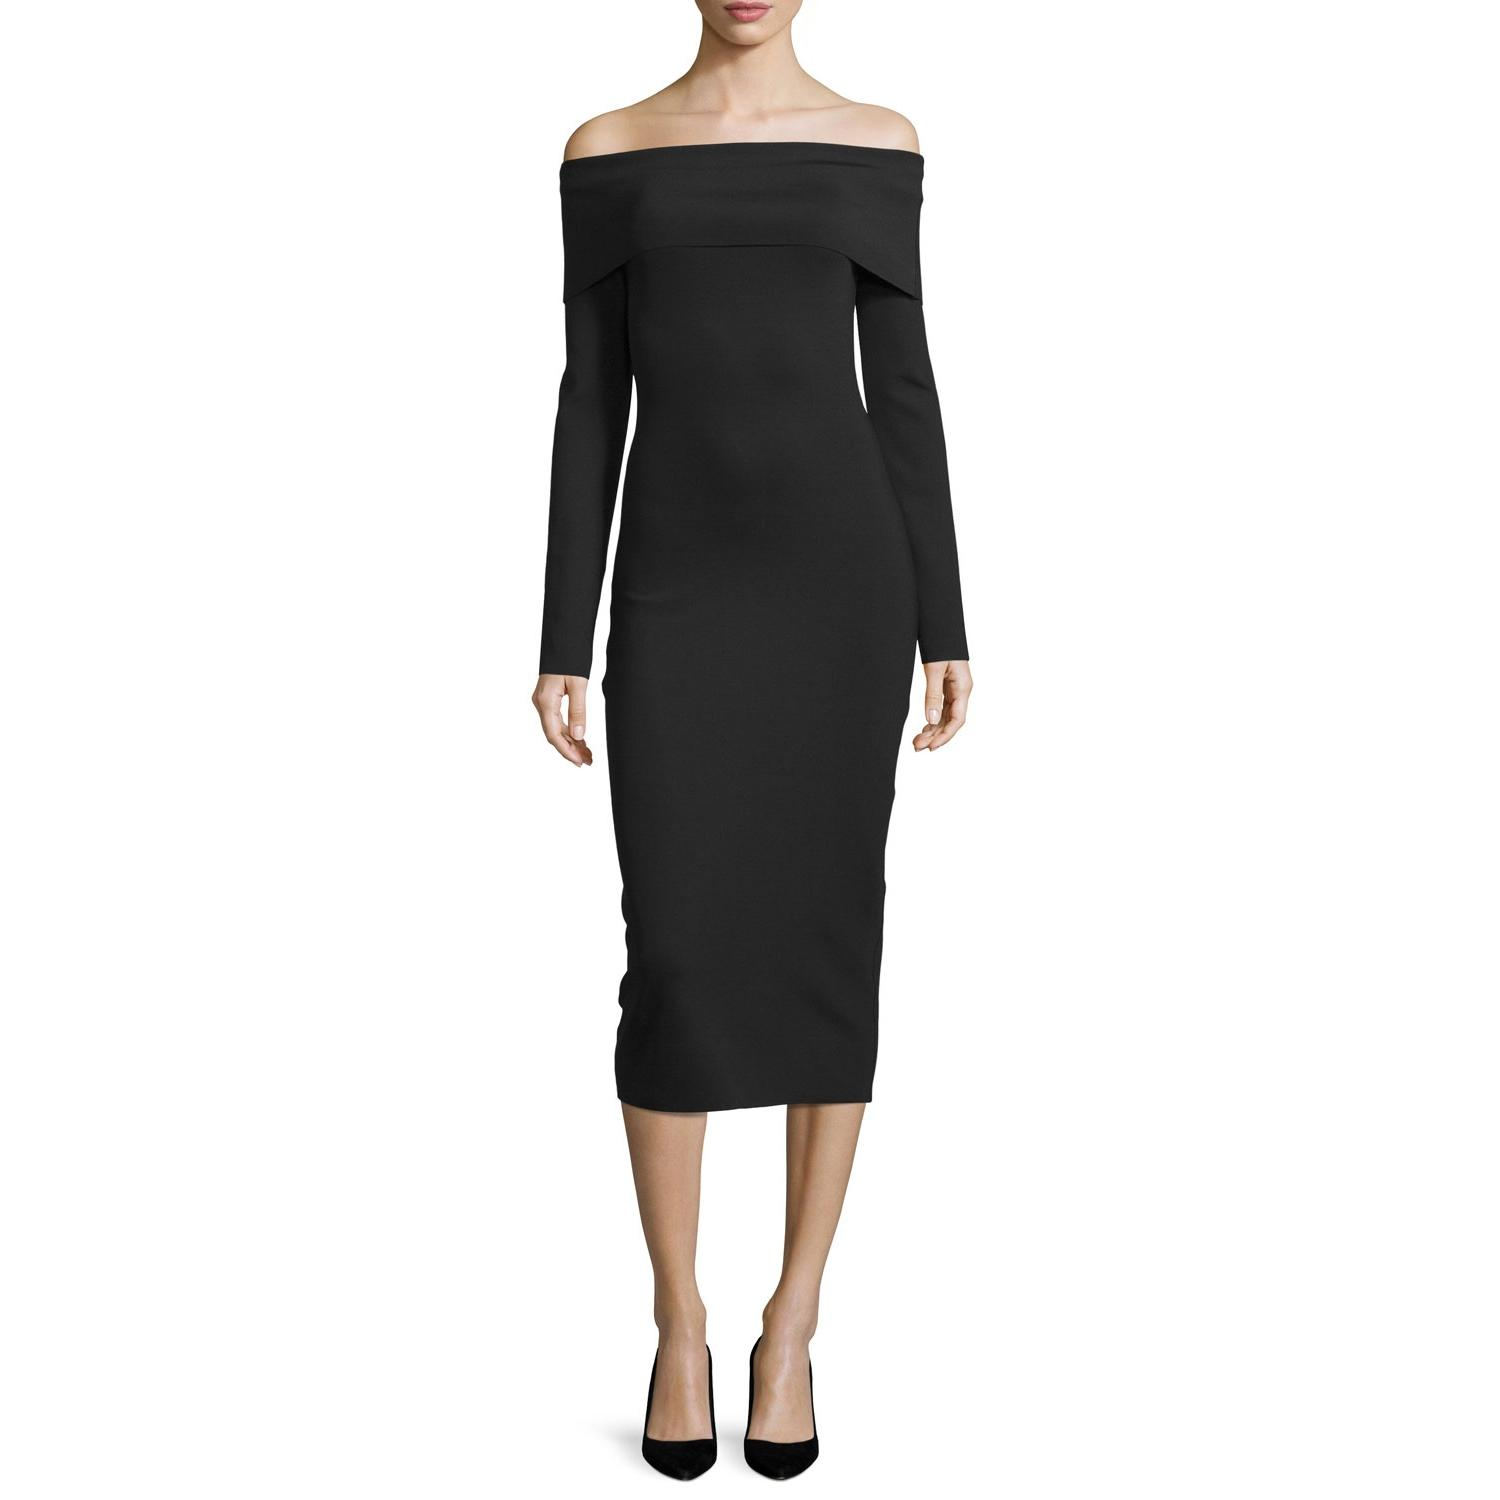 The Row Cocktail Dresses - Up to 90% off at Tradesy